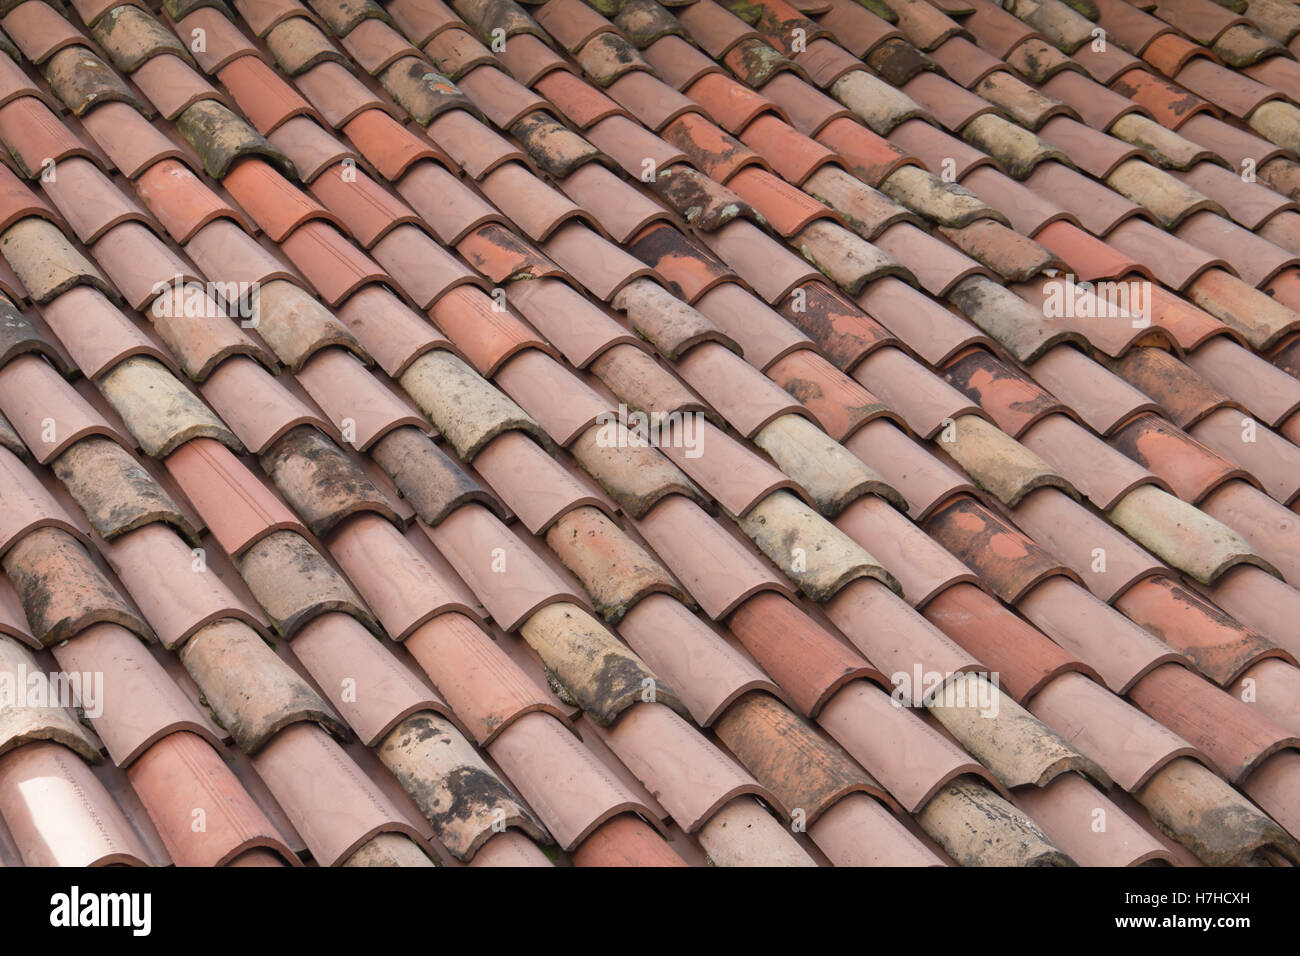 Roof Shingles. Red Roof Shingles. Italy